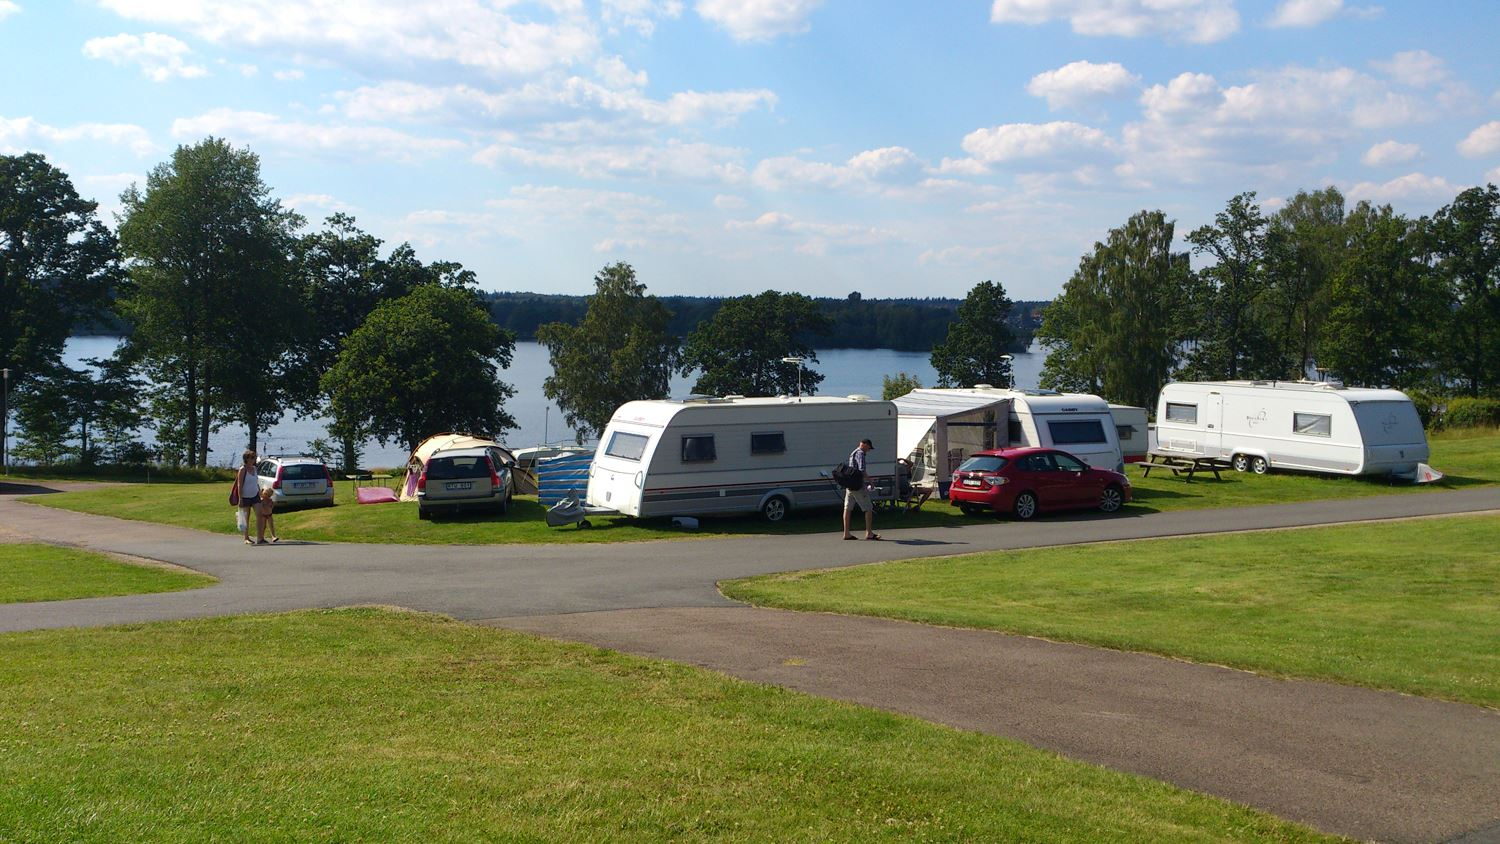 Osby Camping / Camping